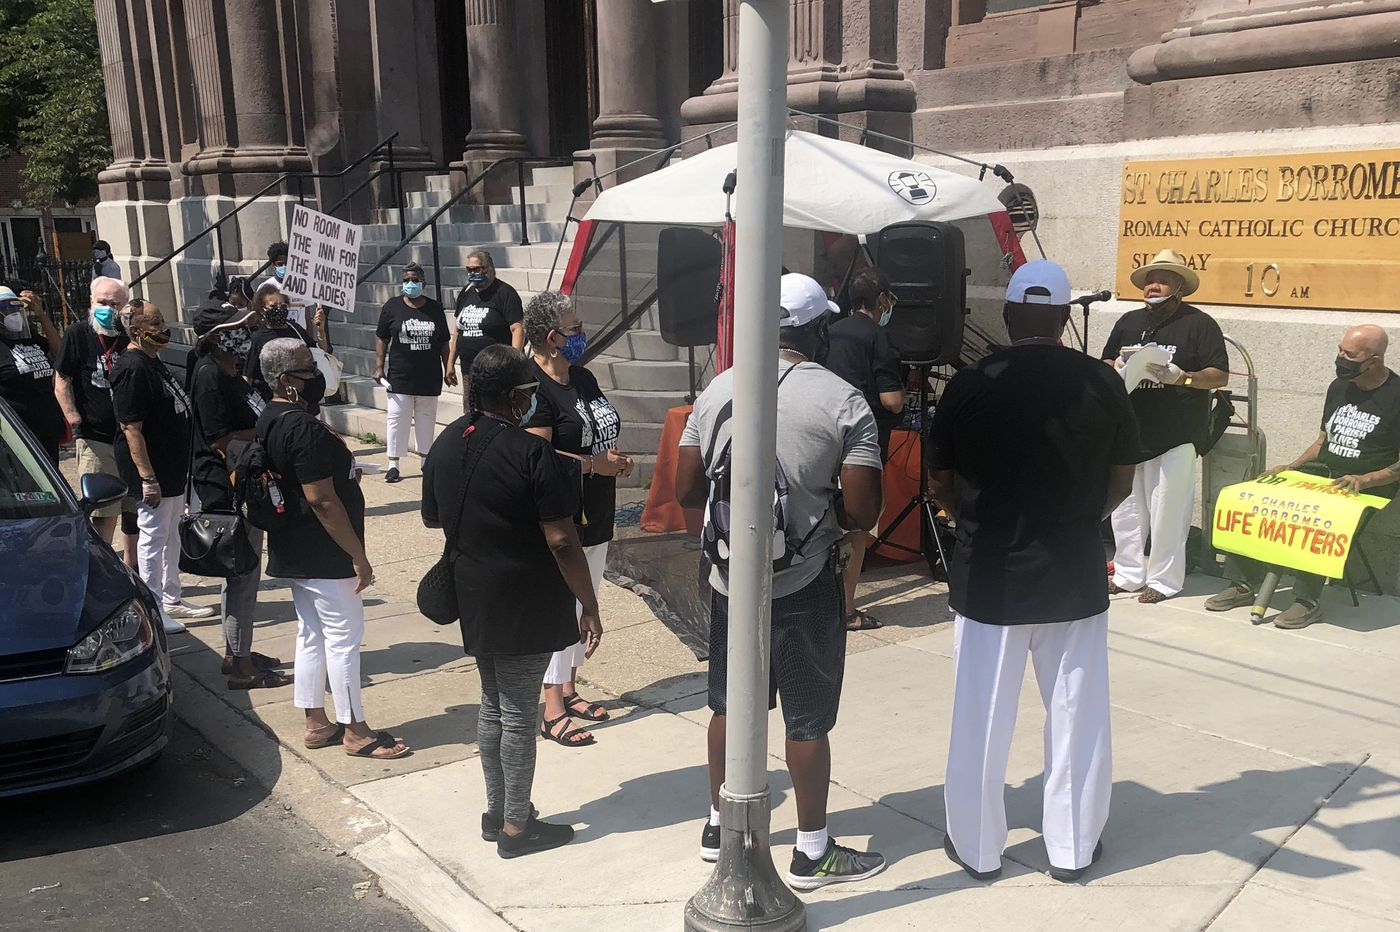 Black members of St. Charles Borromeo Church in South Philly allege racism and will protest to declare their 'parish lives matter'